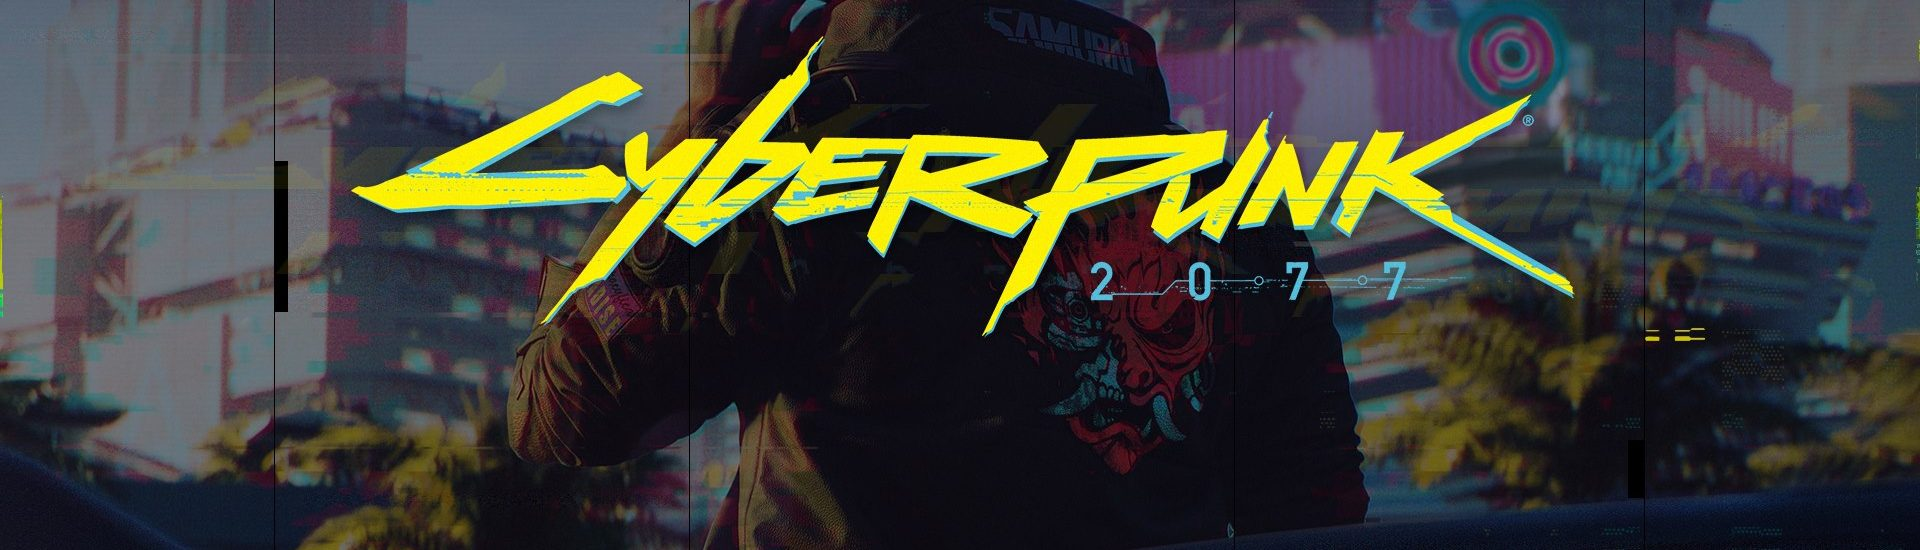 Cyberpunk 2077 de CD Projekt Red